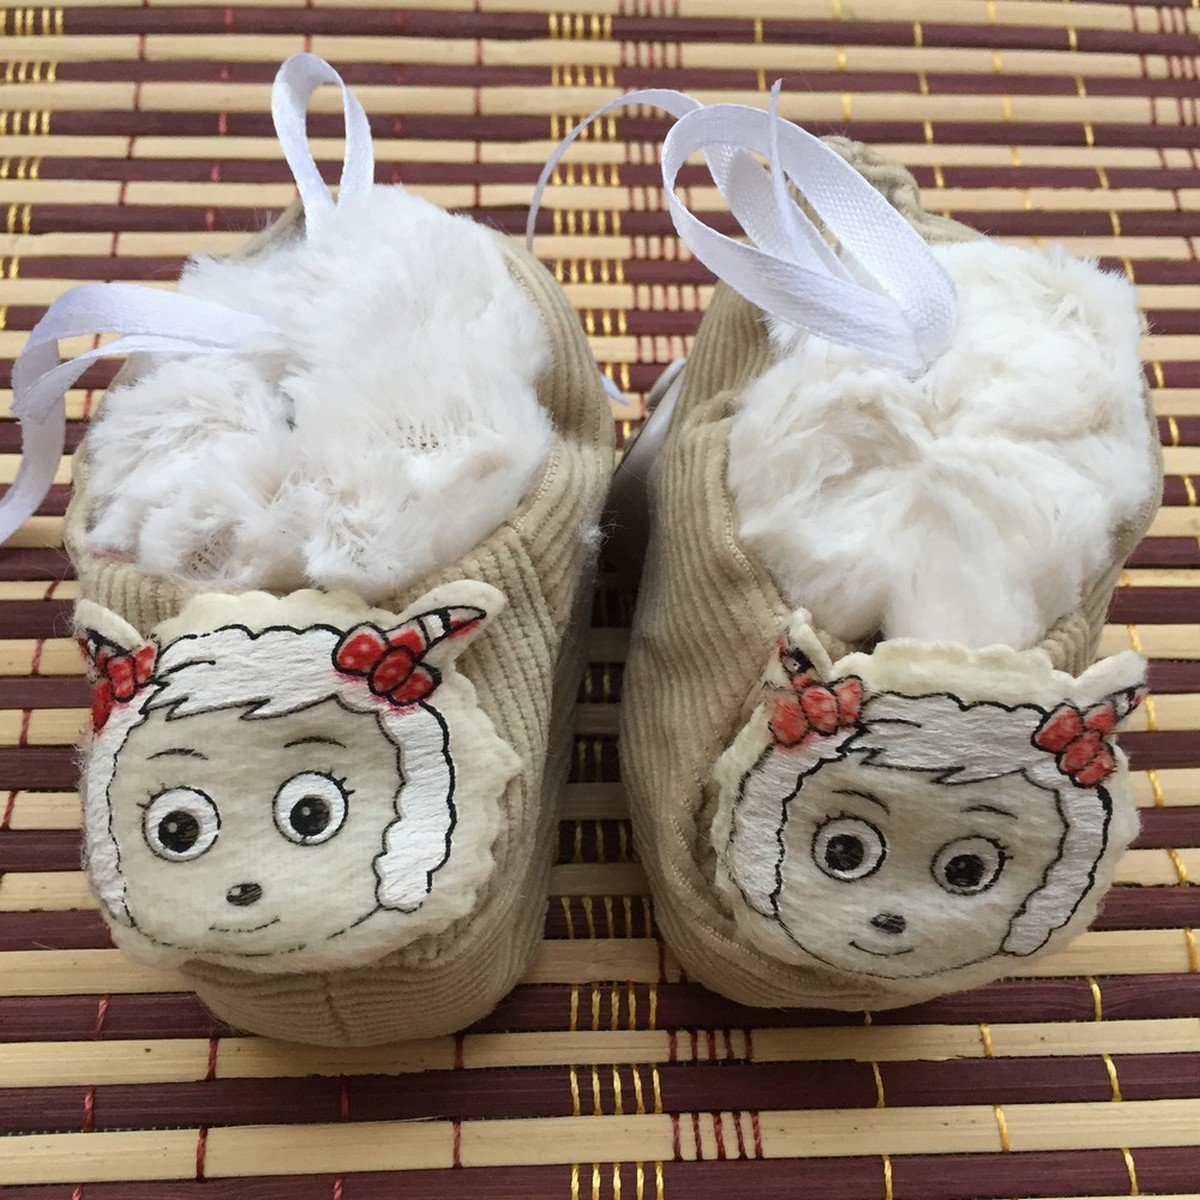 High Quality Newborn Baby Soft Cute Cartoon Characters Face Fancy Booties Socks Shoes - 0-6 Months Infant Toddler New Born Baby 3D Booties Shoes Accessories